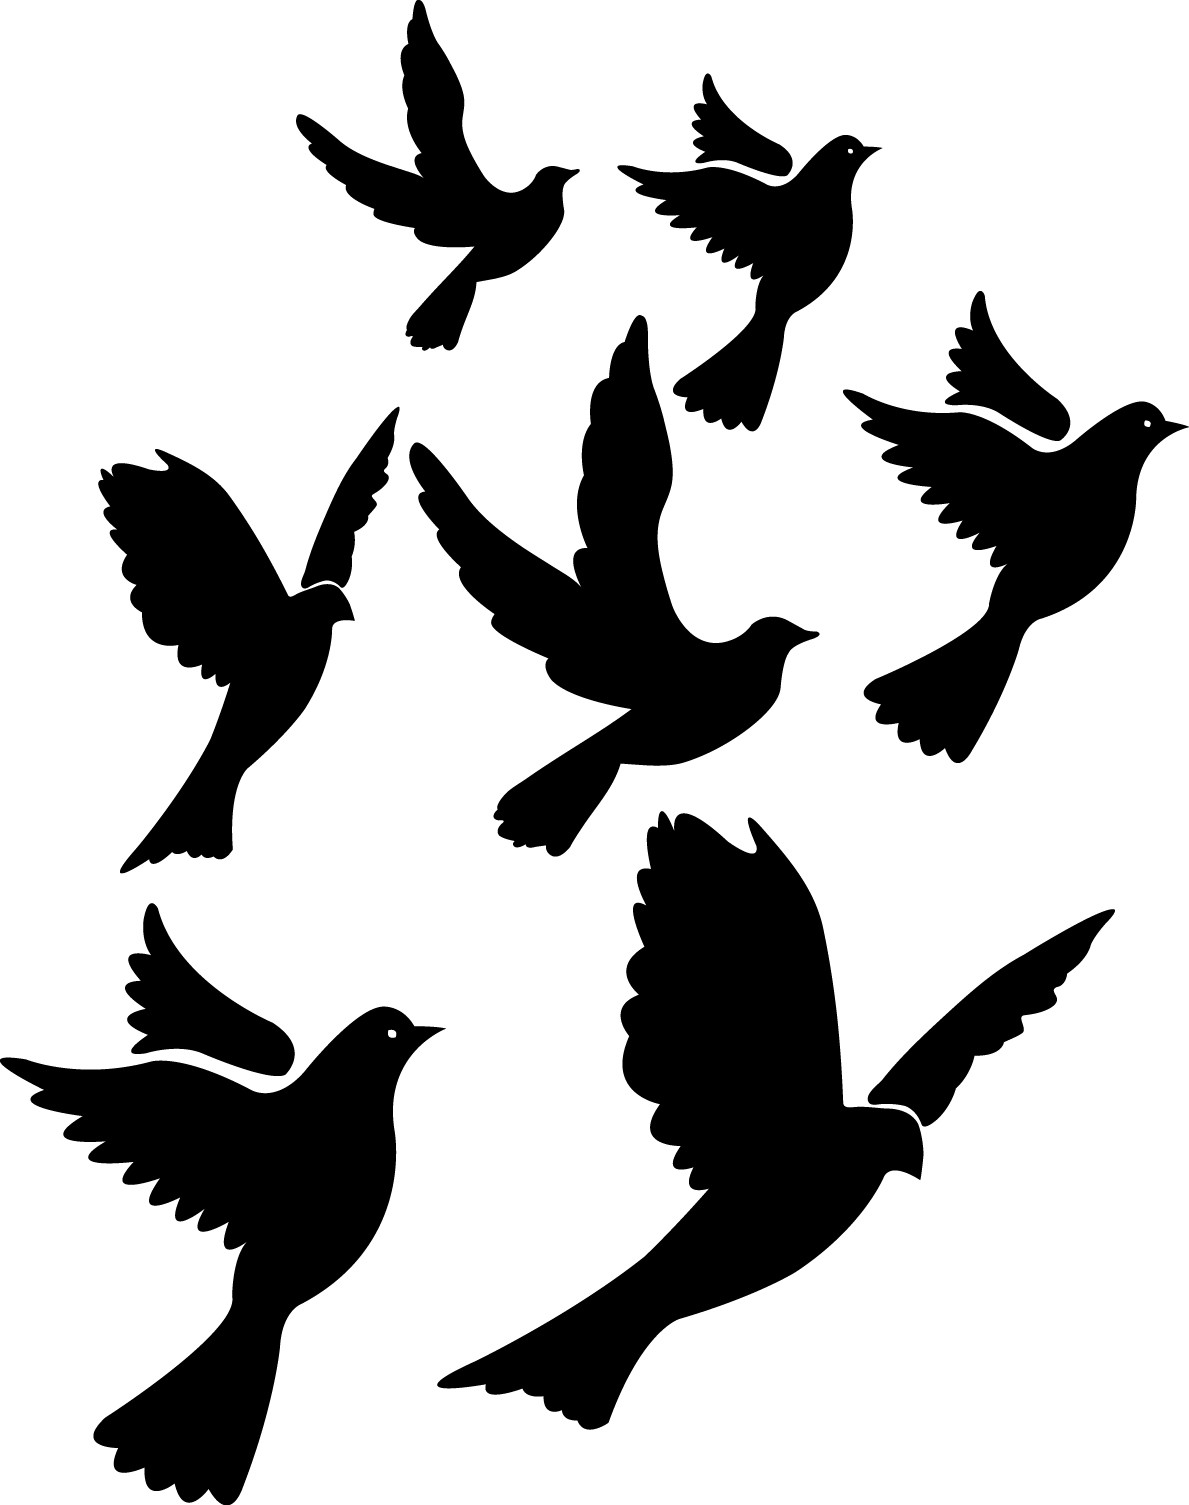 Flying pigeons silhouette png